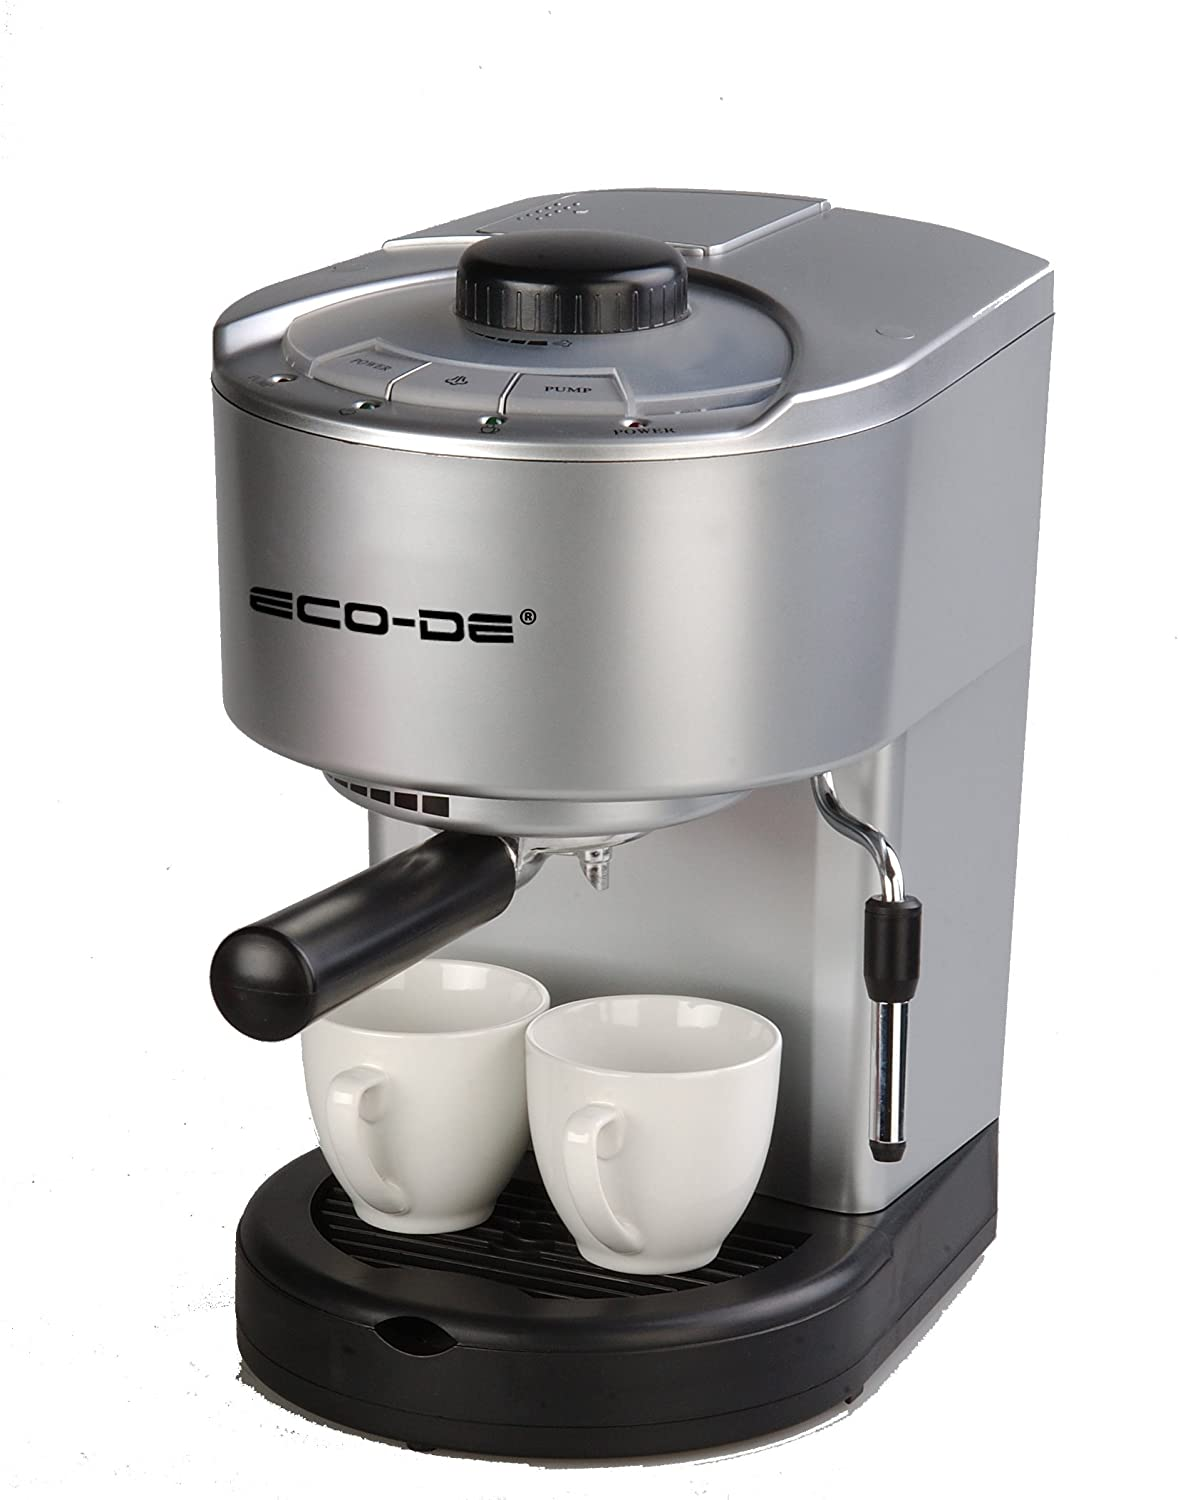 ECO-DE ECO-265- Cafetera espresso, 15 bar: Amazon.es: Hogar